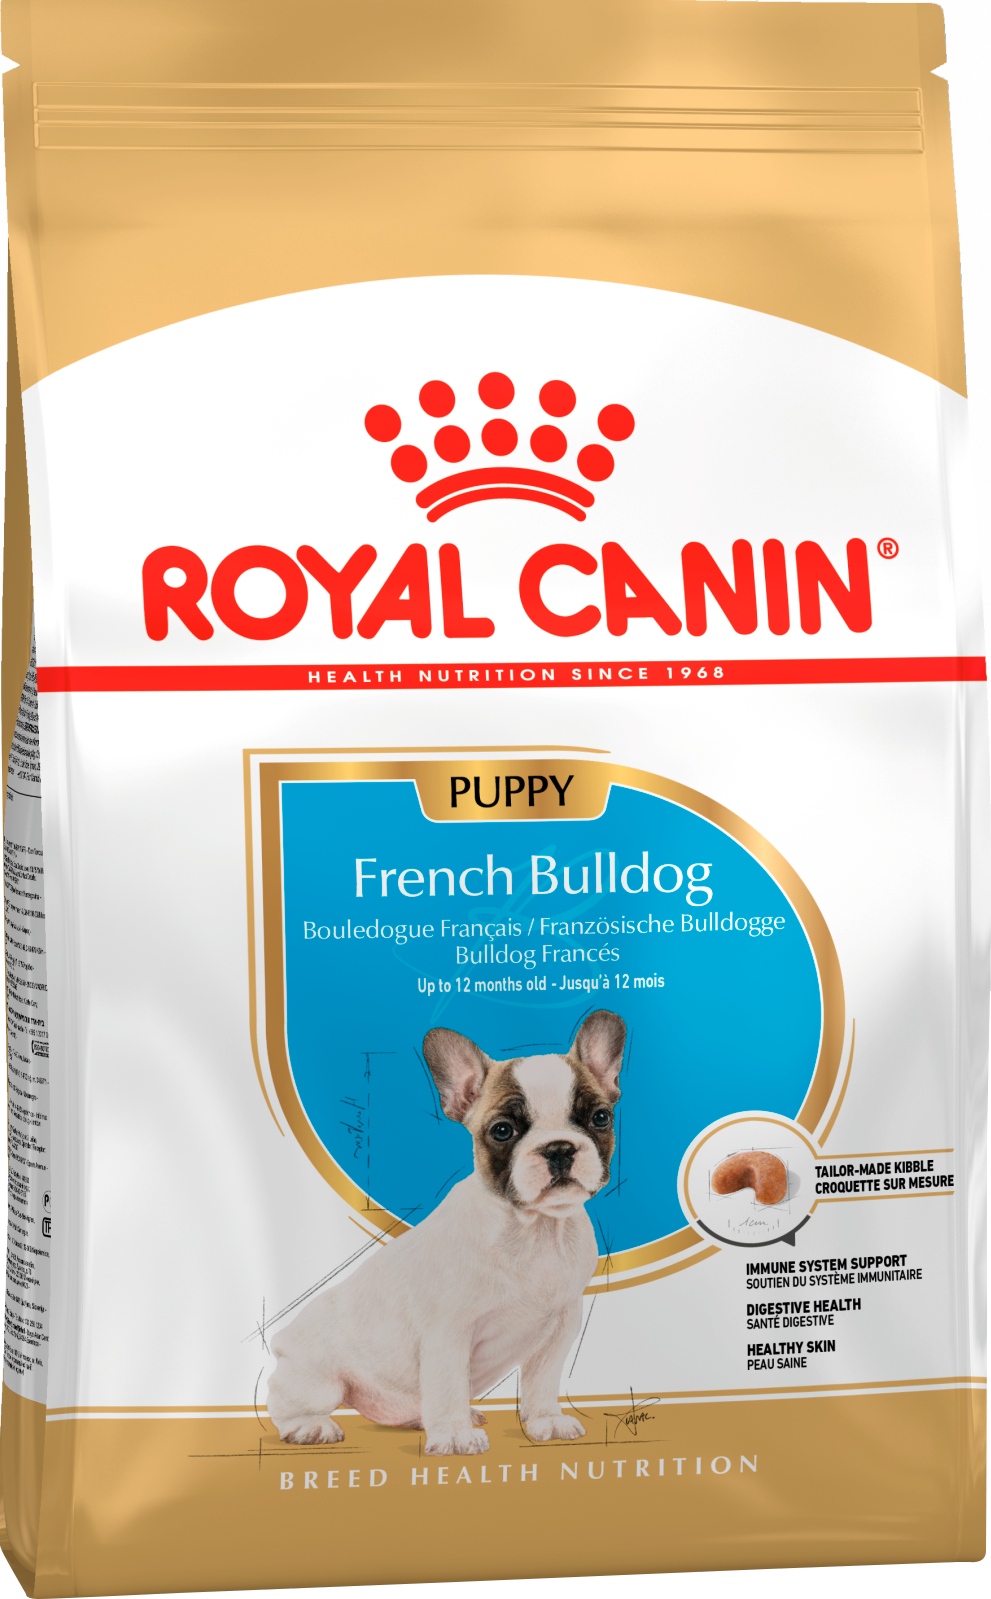 Royal Canin Корм для щенков собак породы французский бульдог, Royal Canin French Bulldog Puppy 181030.png